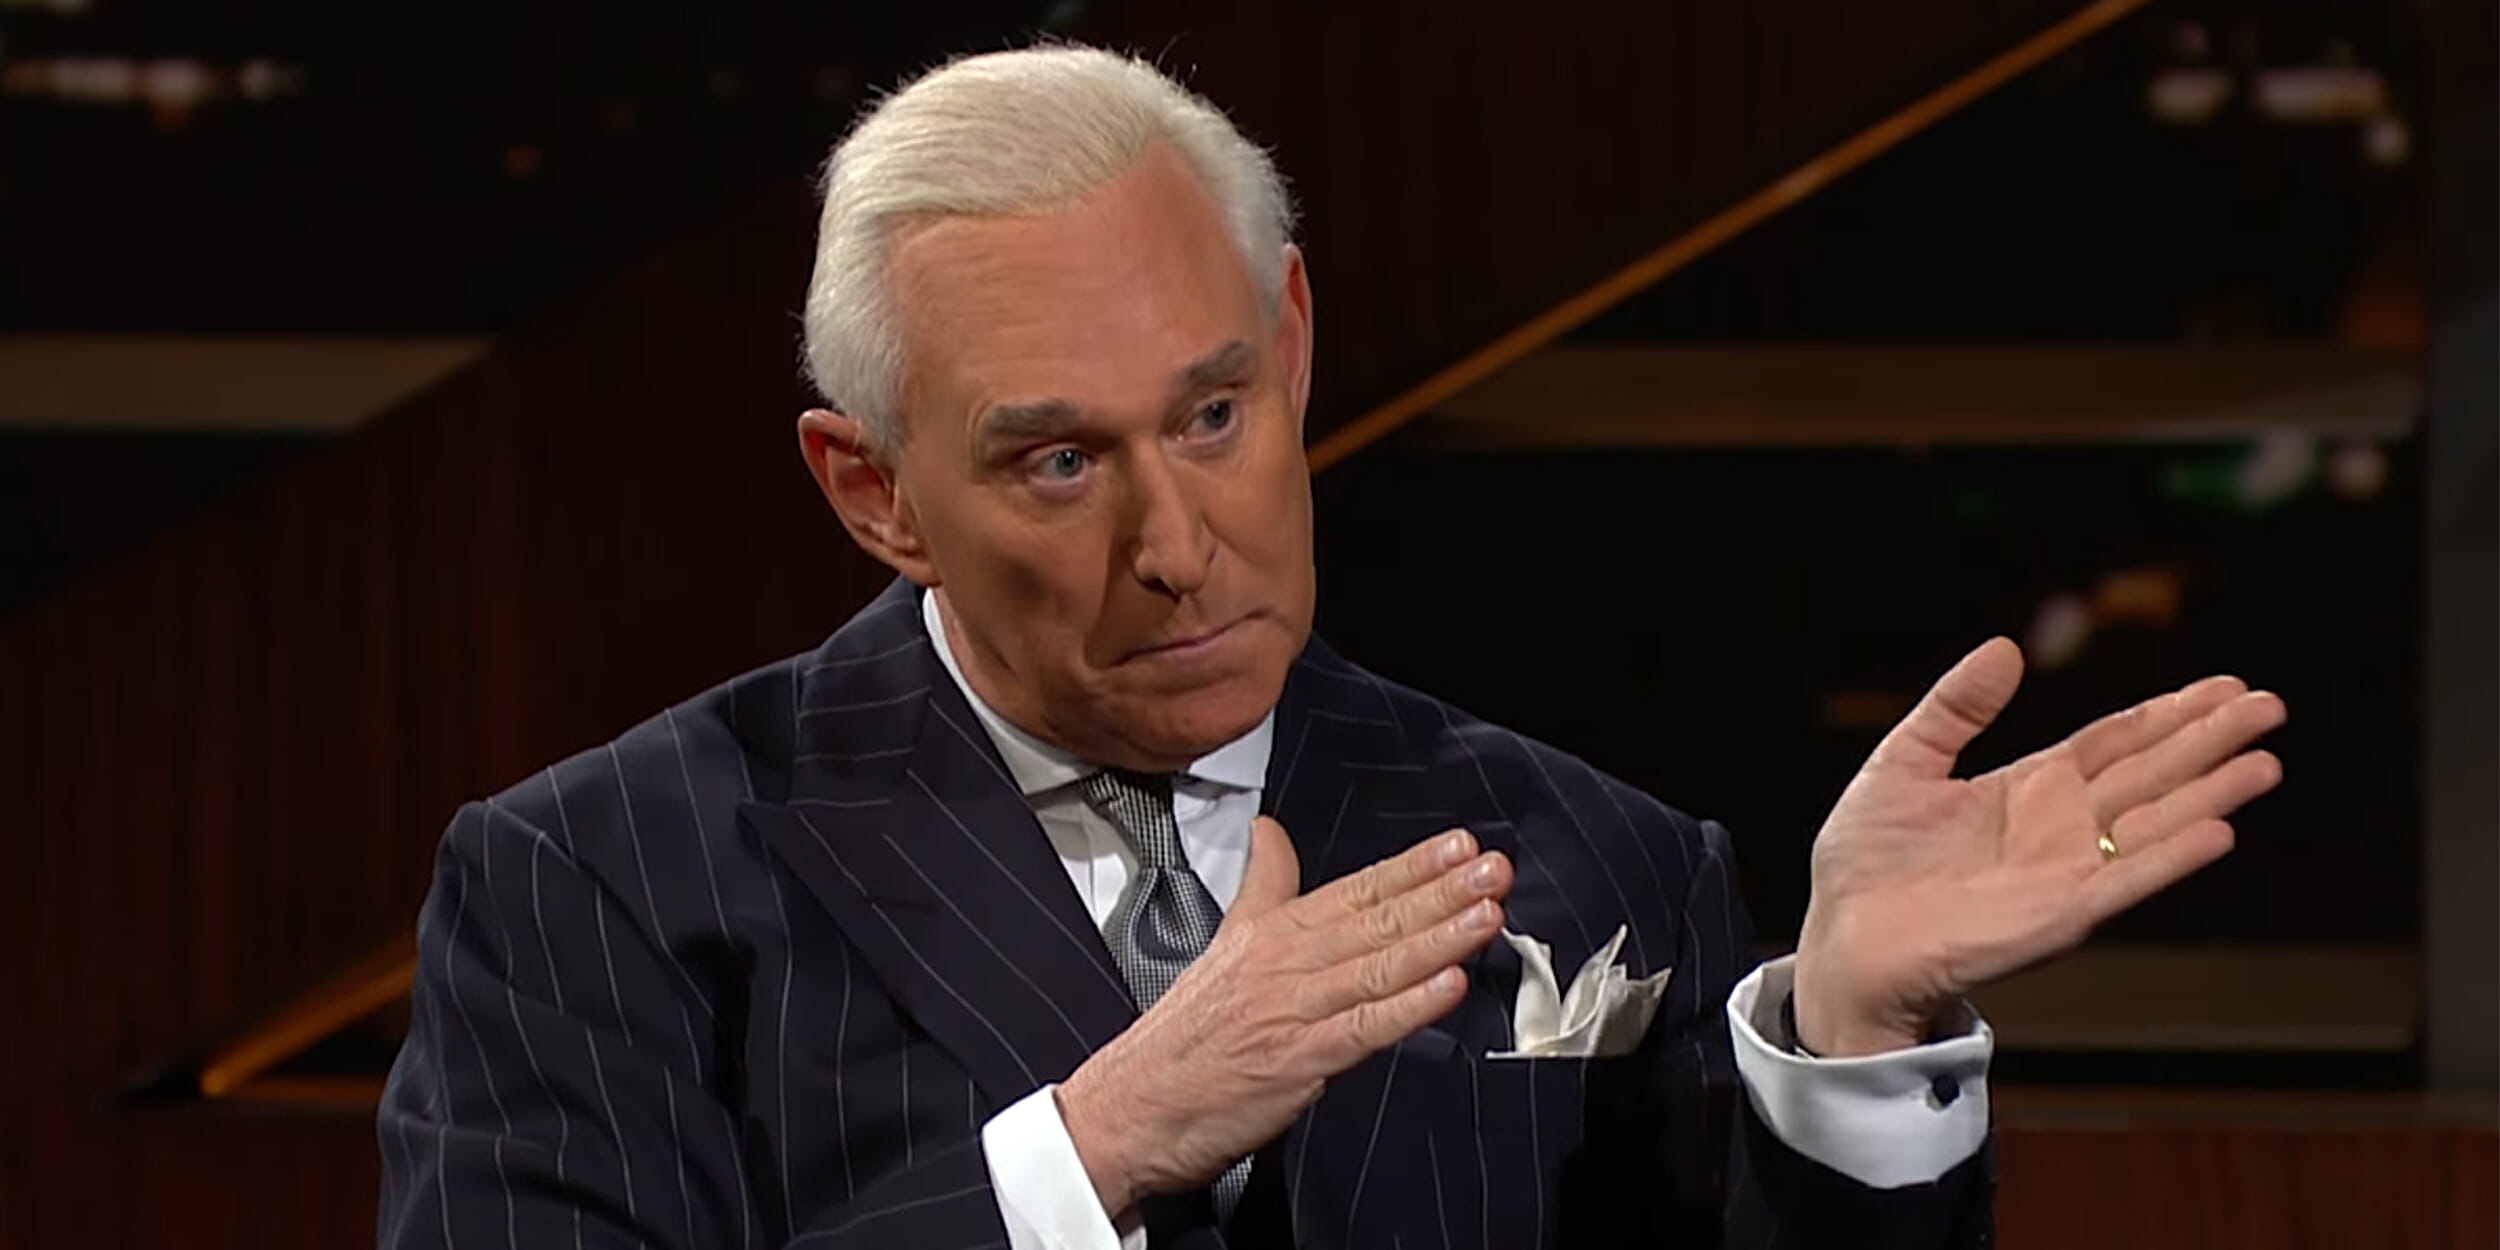 Roger Stone Communicated With WikiLeaks During 2016 Campaign